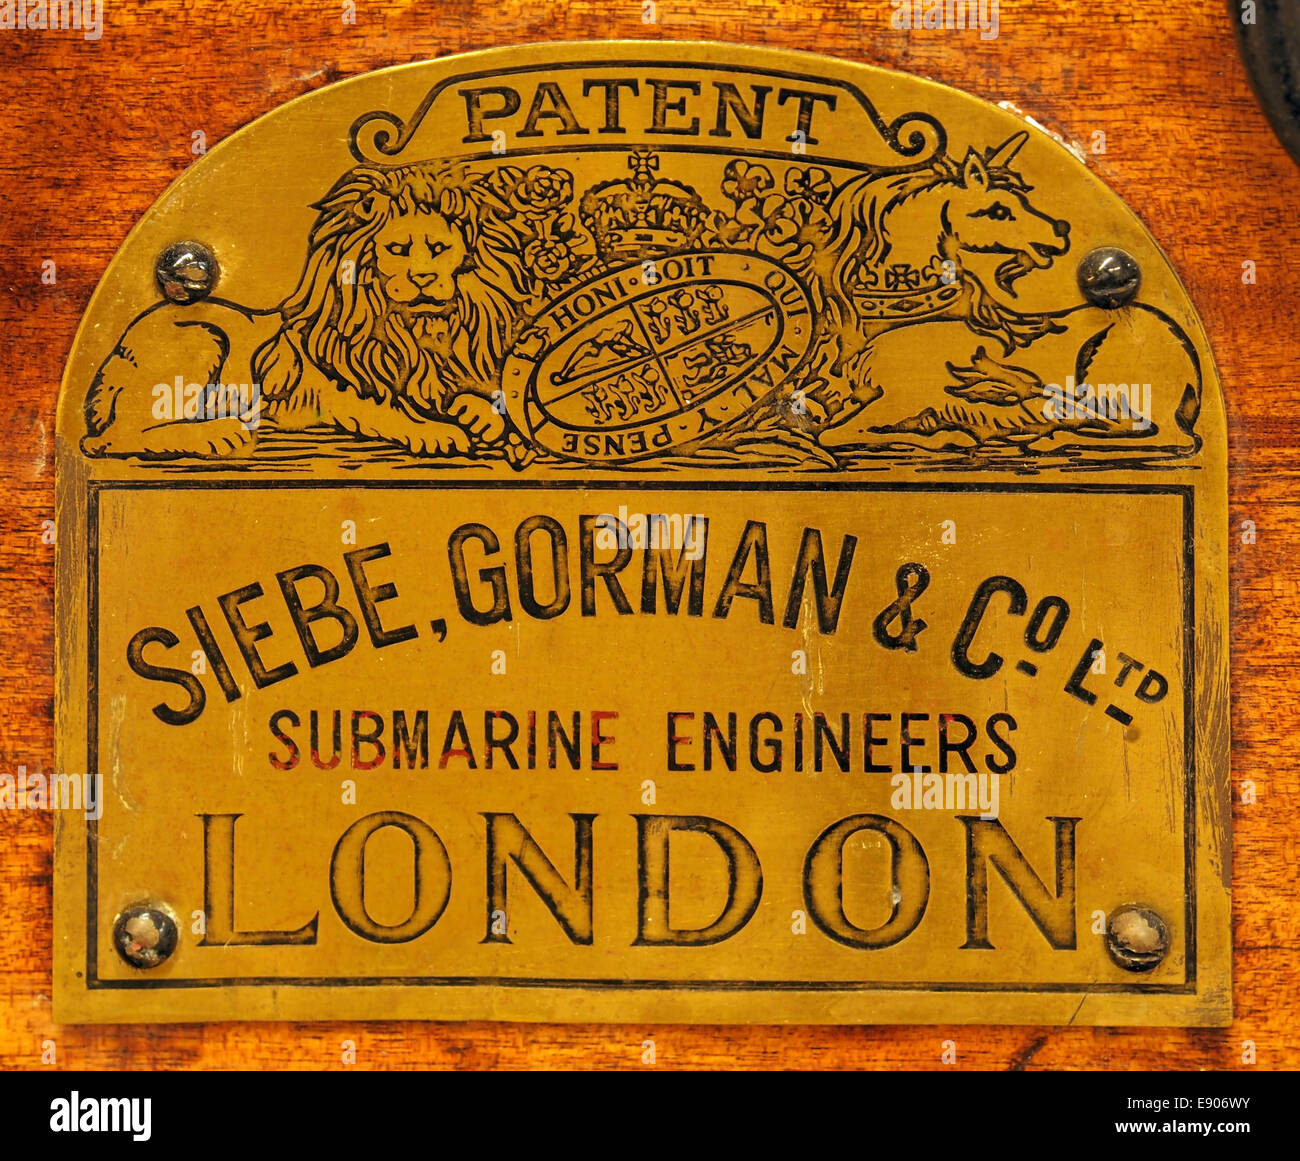 Siebe, Gorman & Co ltd, Submarine engineers, London, logo, Geniemuseum Vught - Stock Image